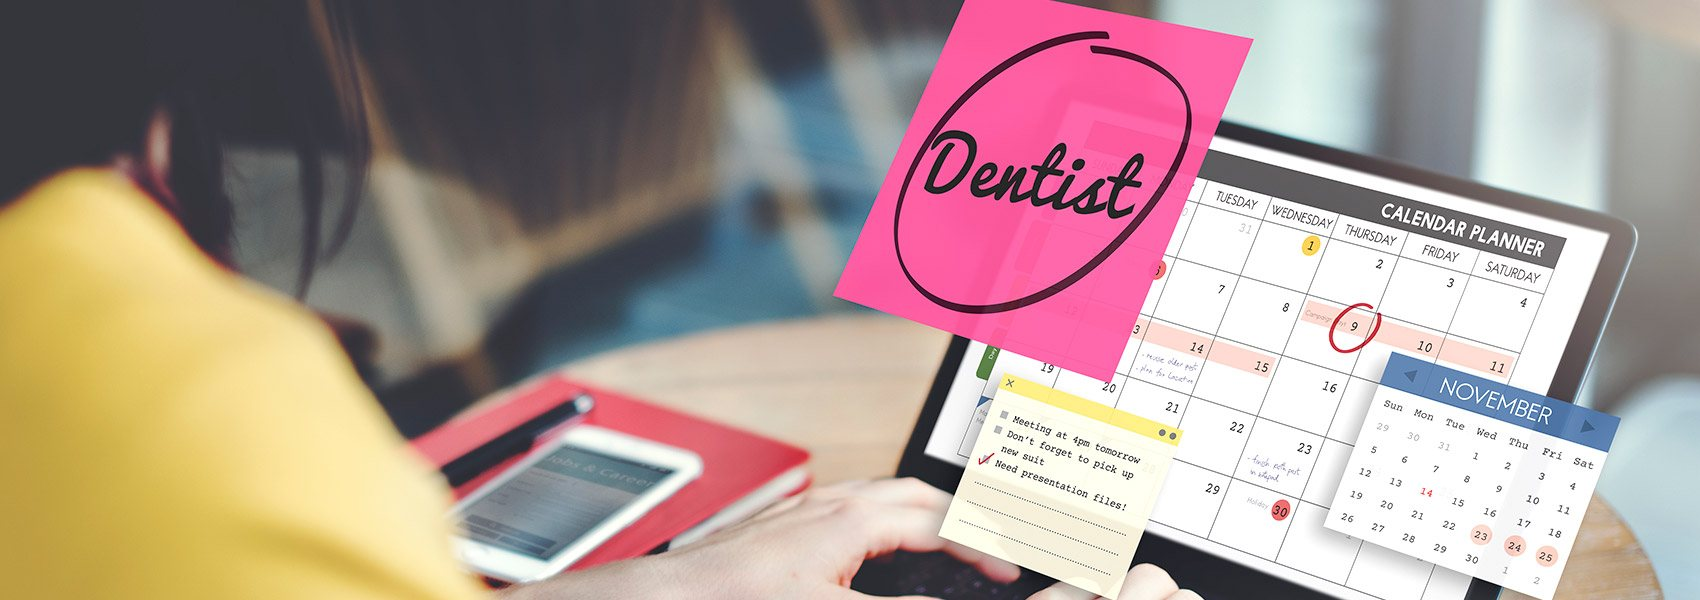 Request An Appointment with Thompson Dental - McKinney, TX